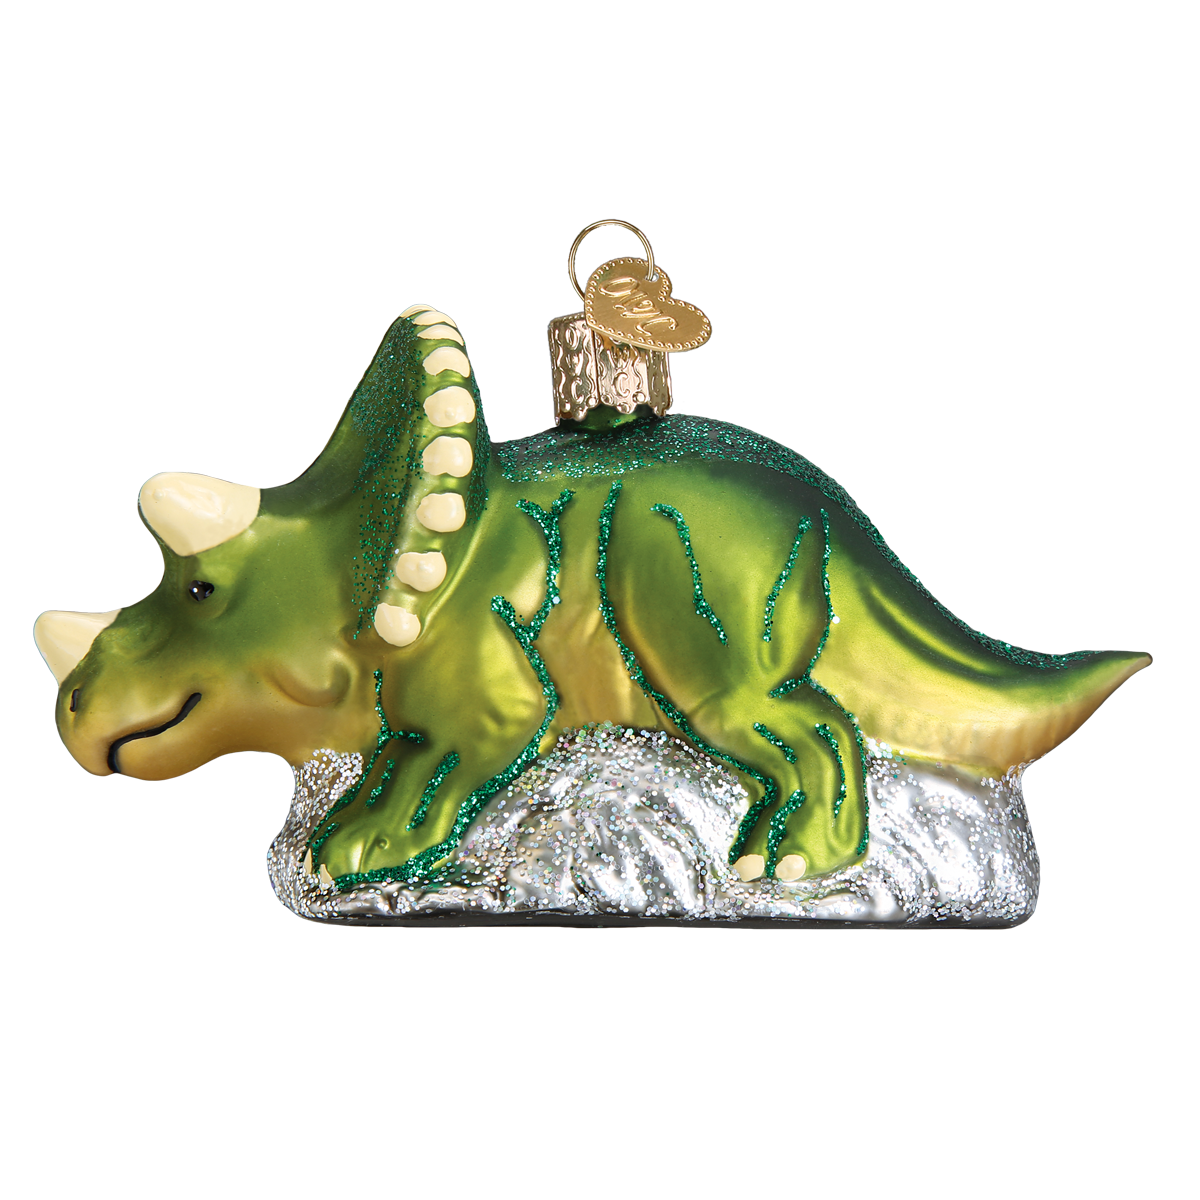 dinosaur ornaments decorations - Dinosaur Christmas Decorations